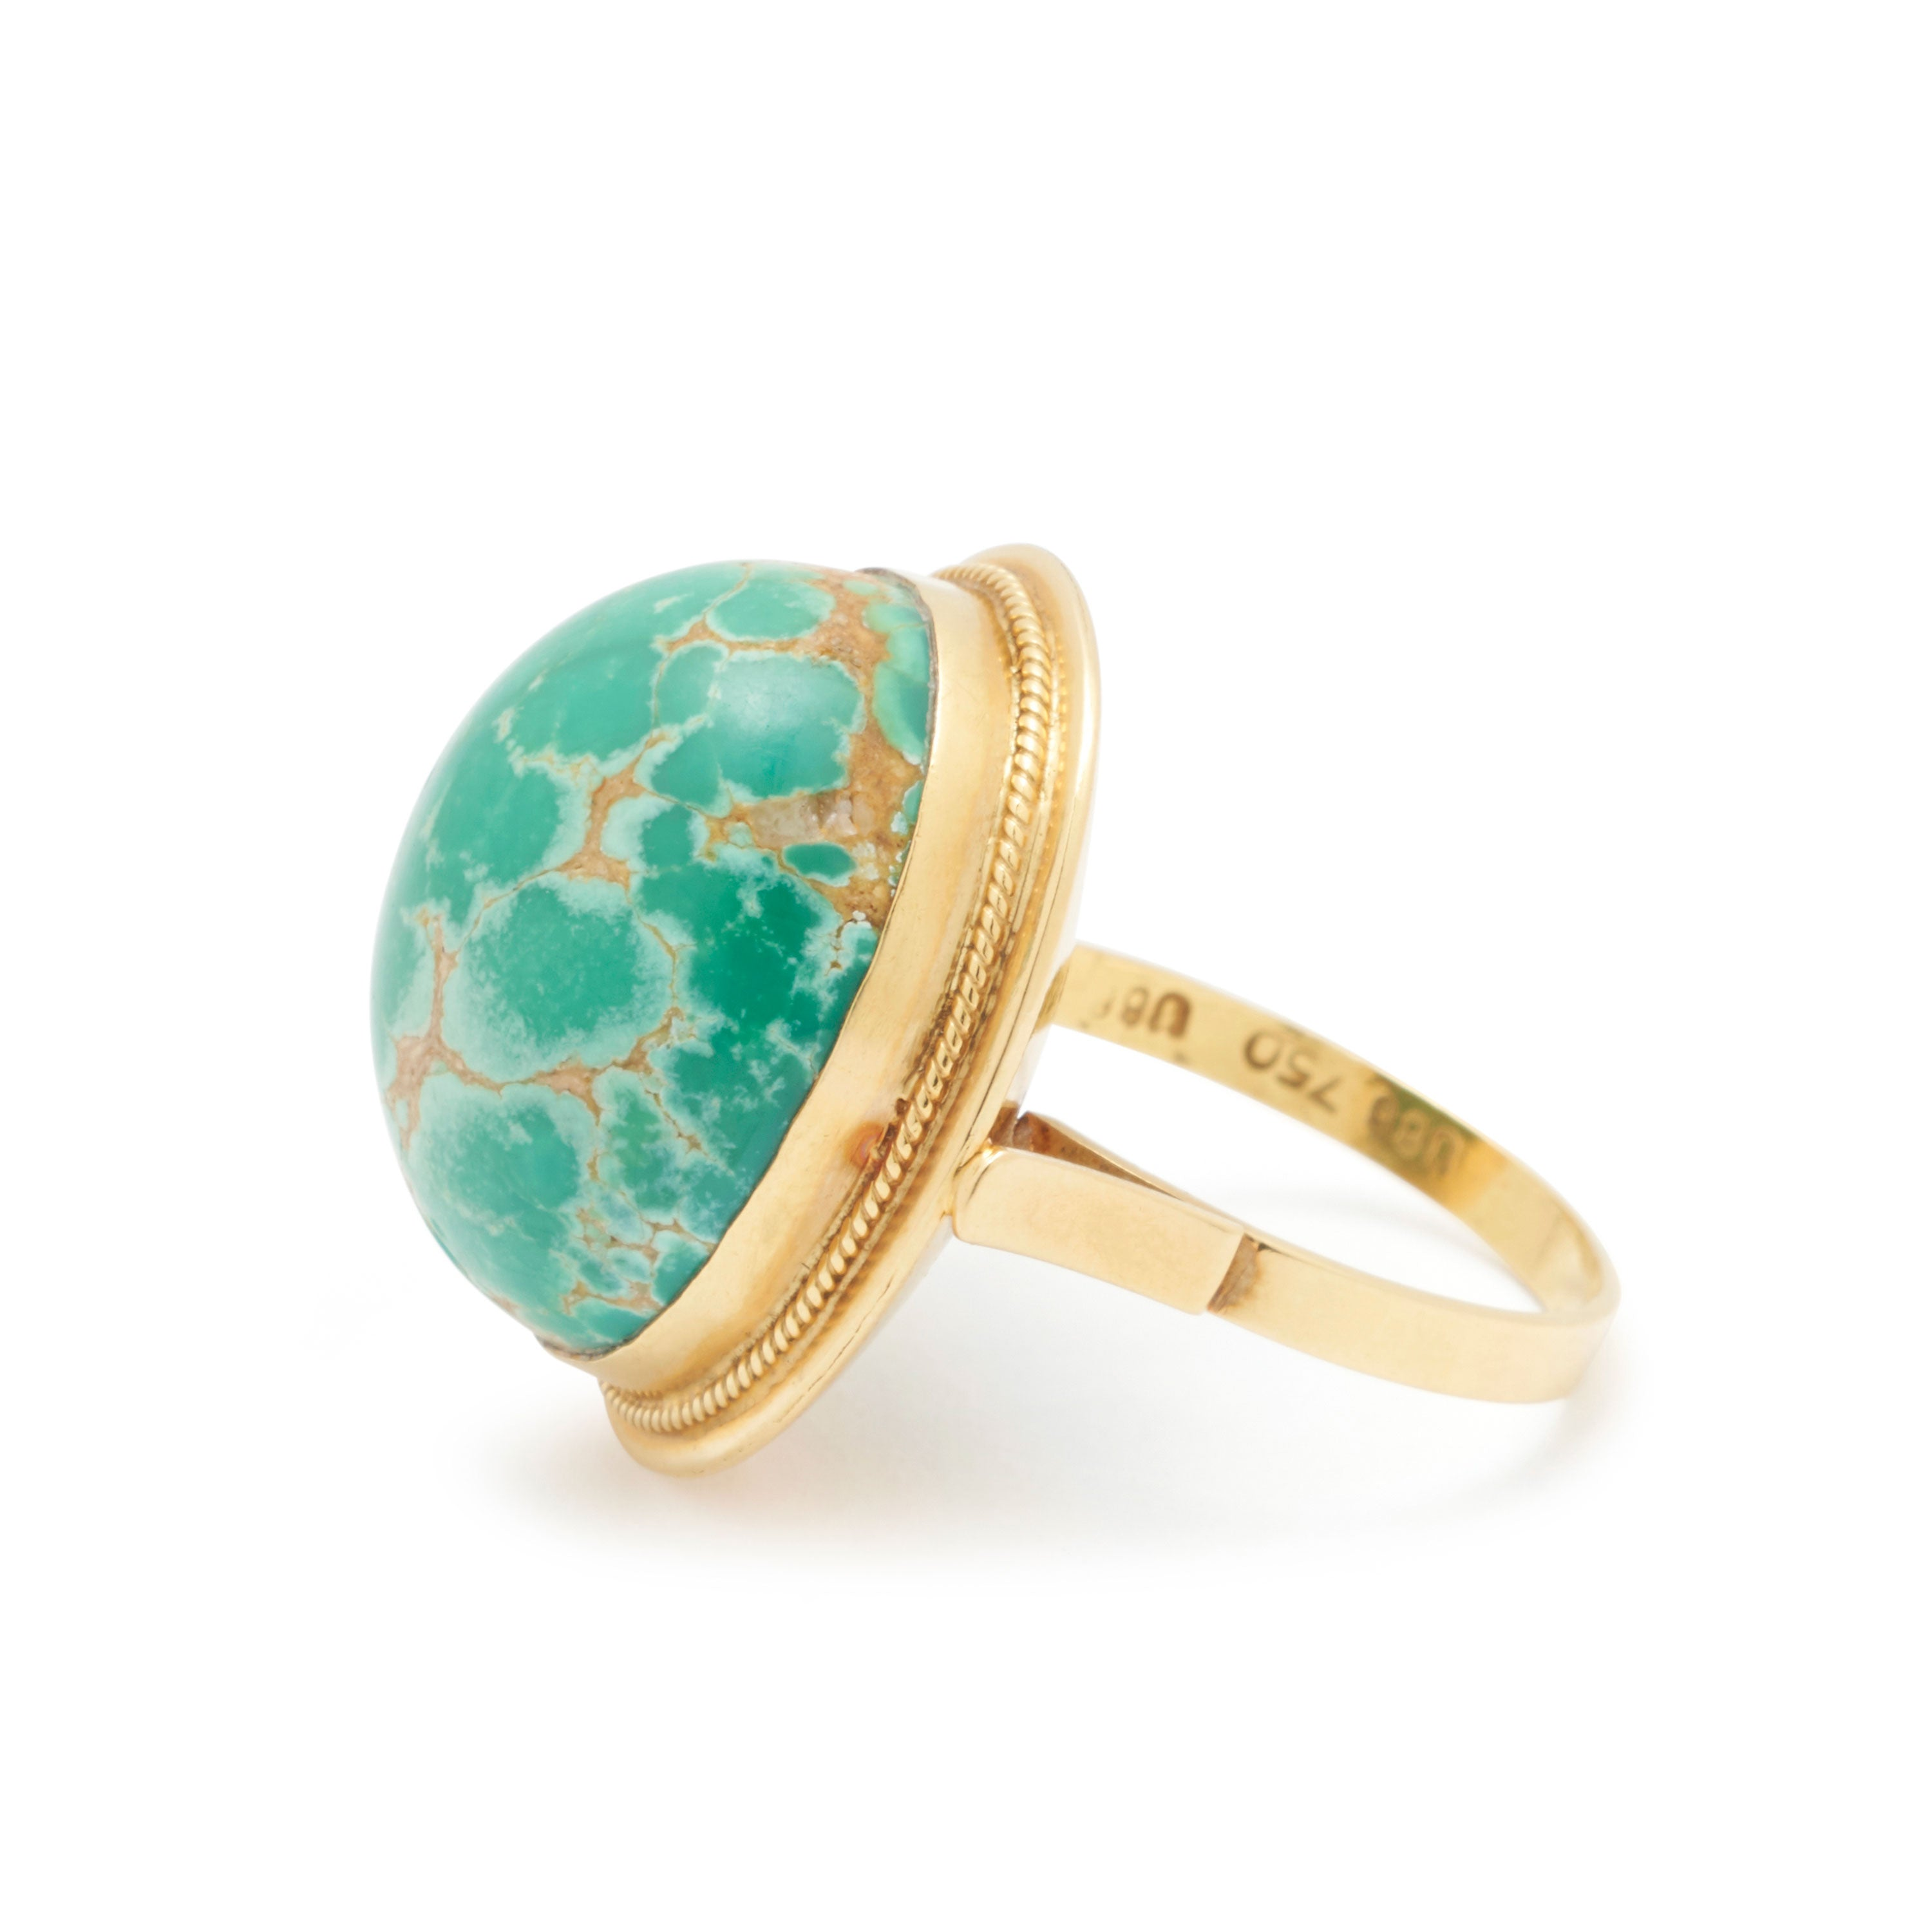 Large Green Turquoise And 18k Gold Ring